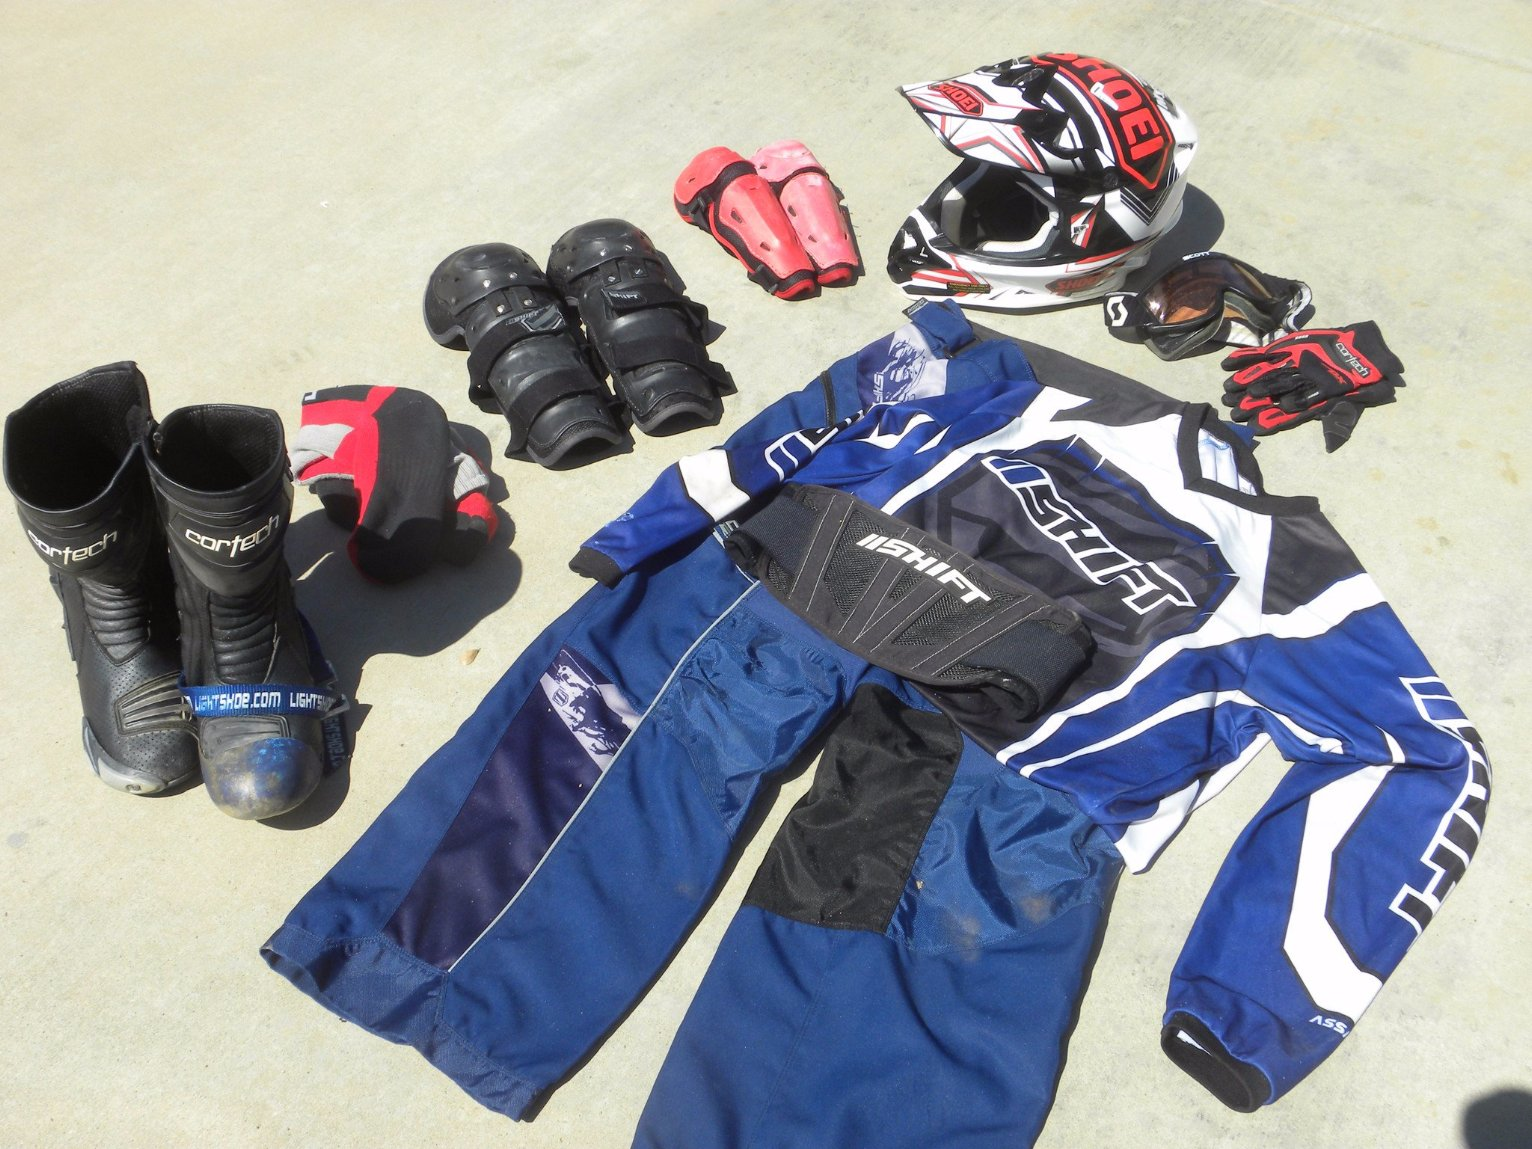 964a6d34c99 Riding Gear Rental - Complete Set – Rich Oliver's Mystery School